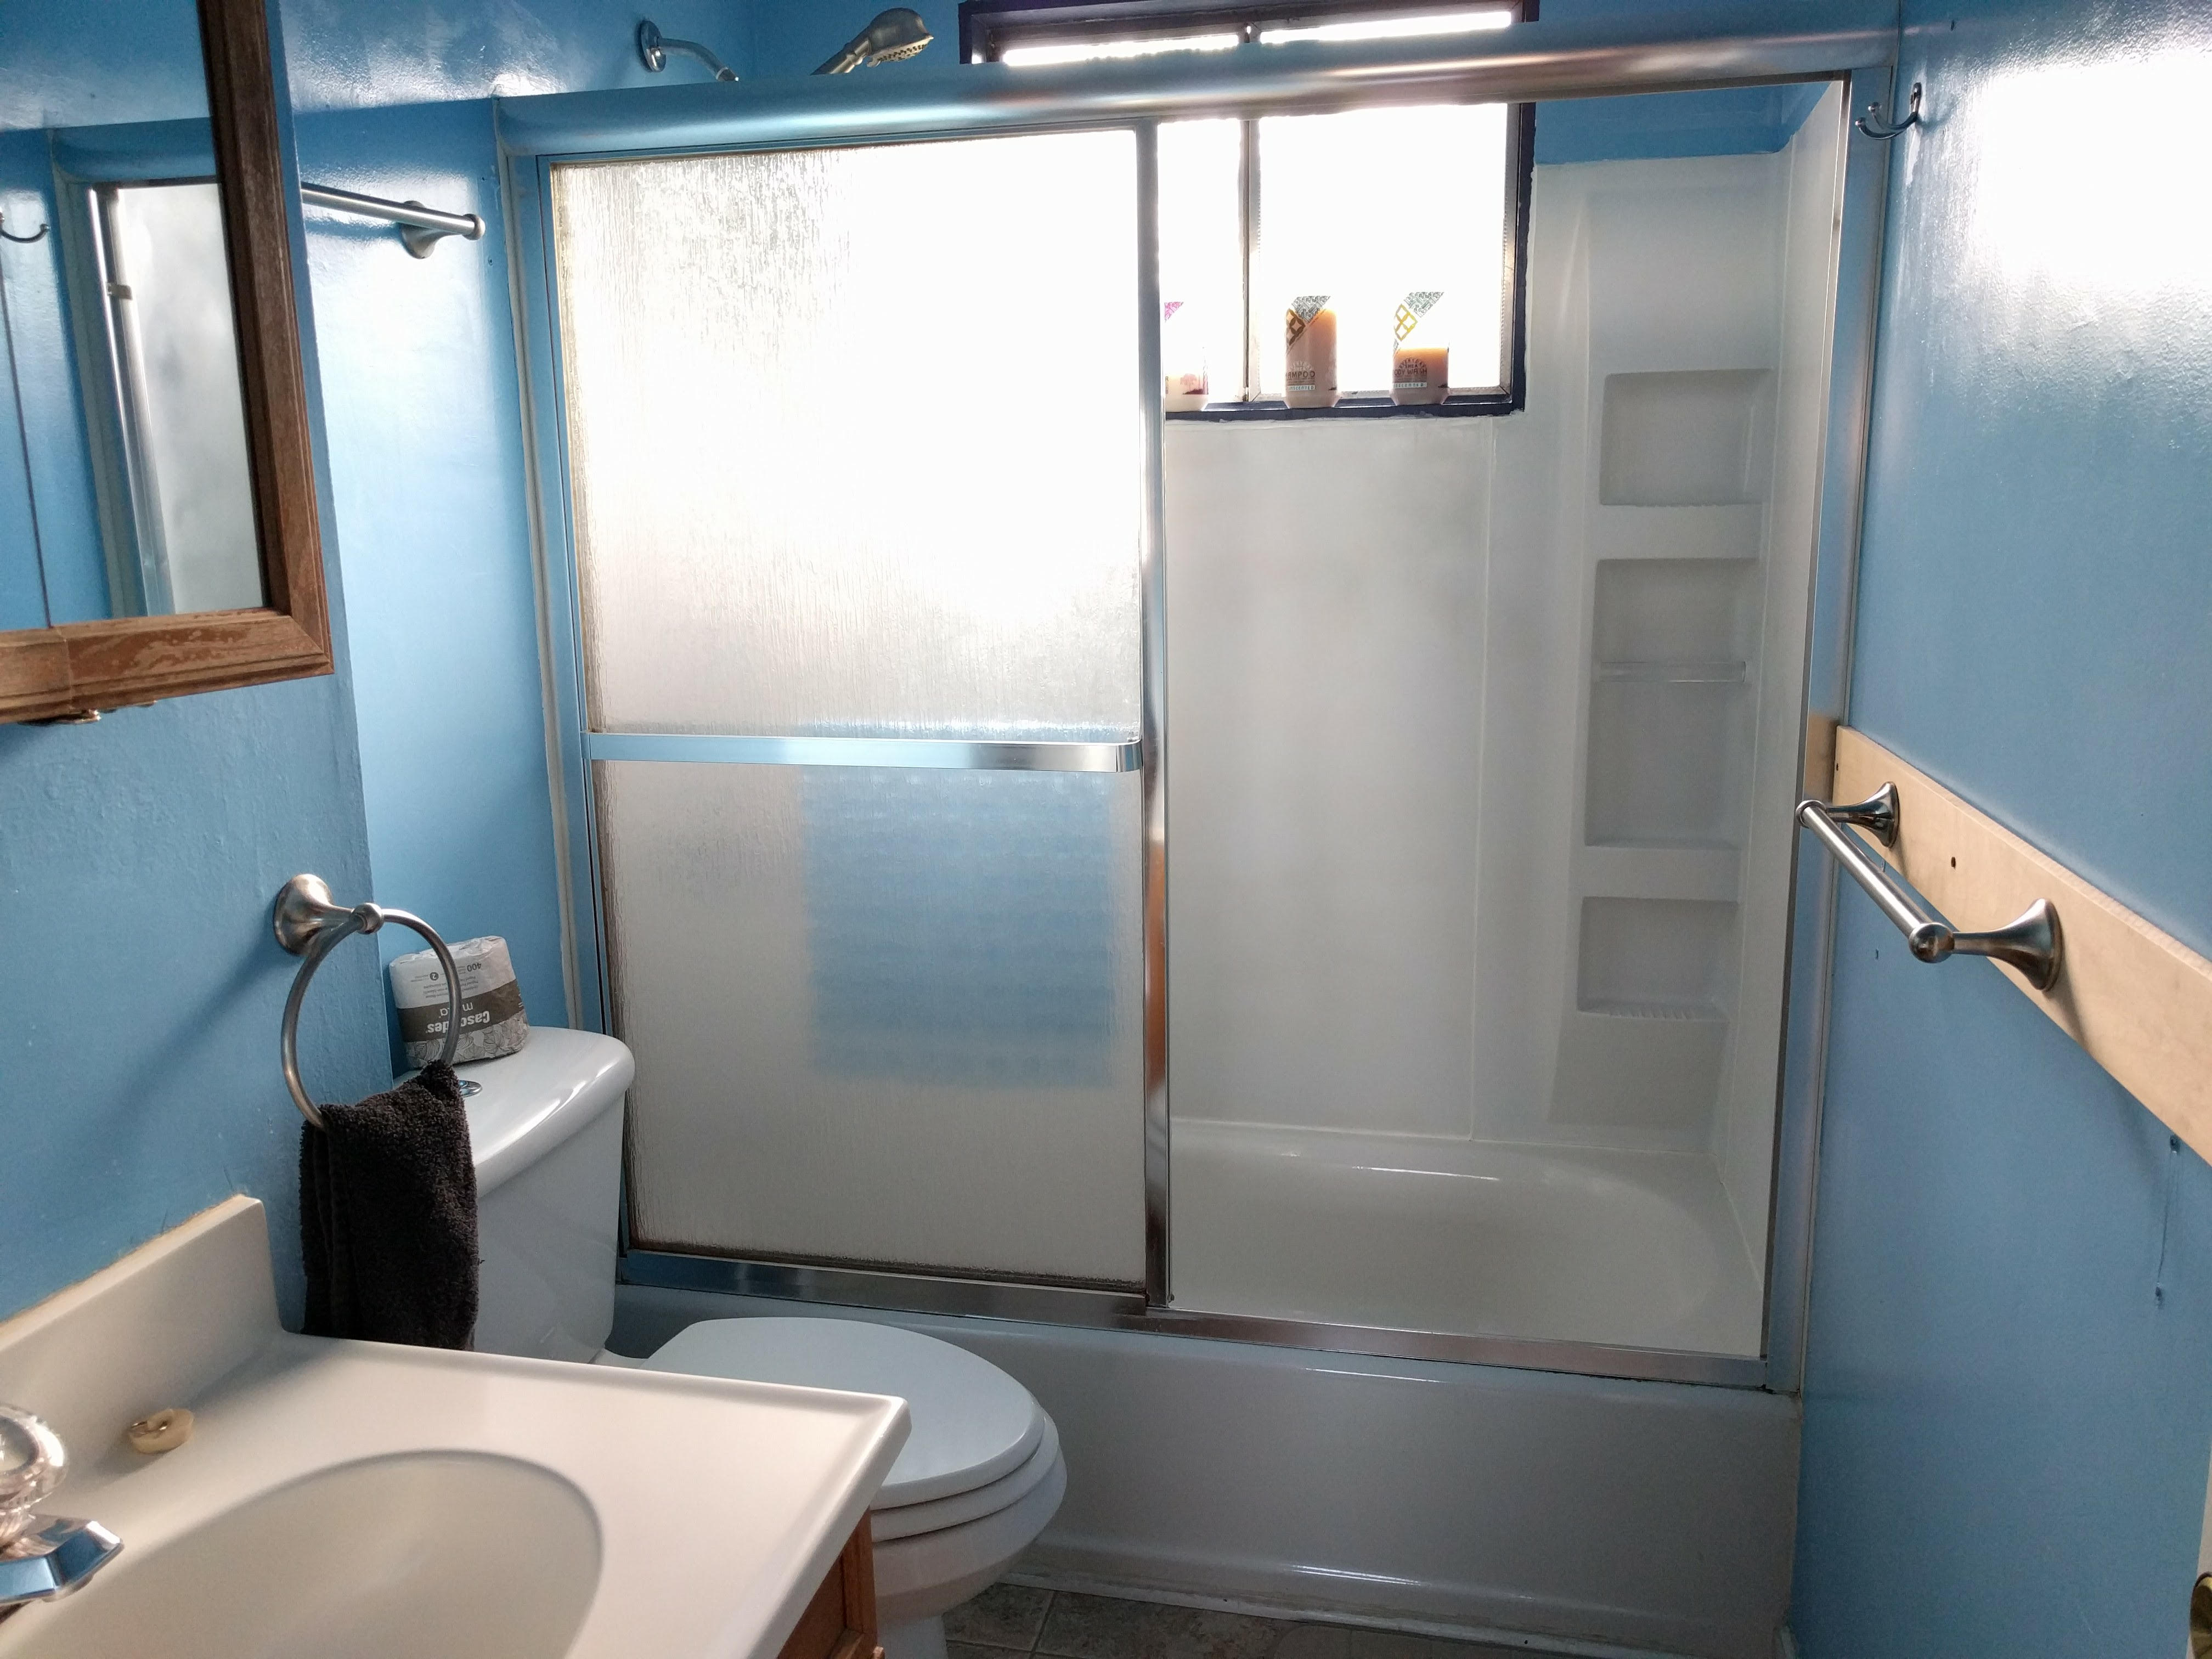 shared-bathroom-at-fairhaven-guesthouse-in-charlottesville-va